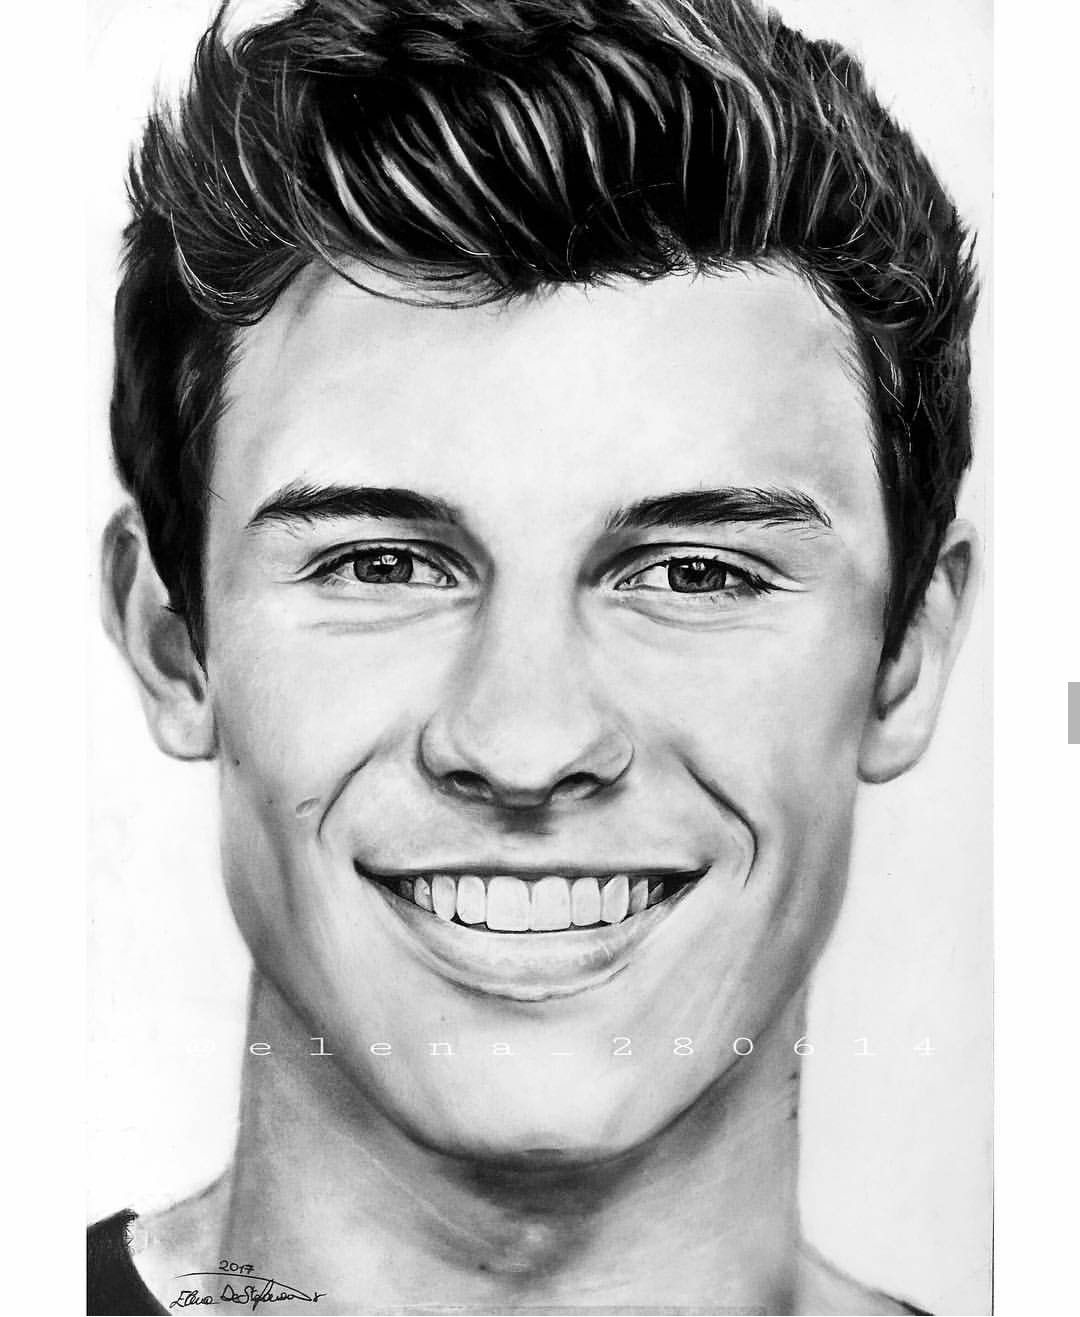 Great job to whoever drew this its the best drawing ive ever seen of shawn ❤